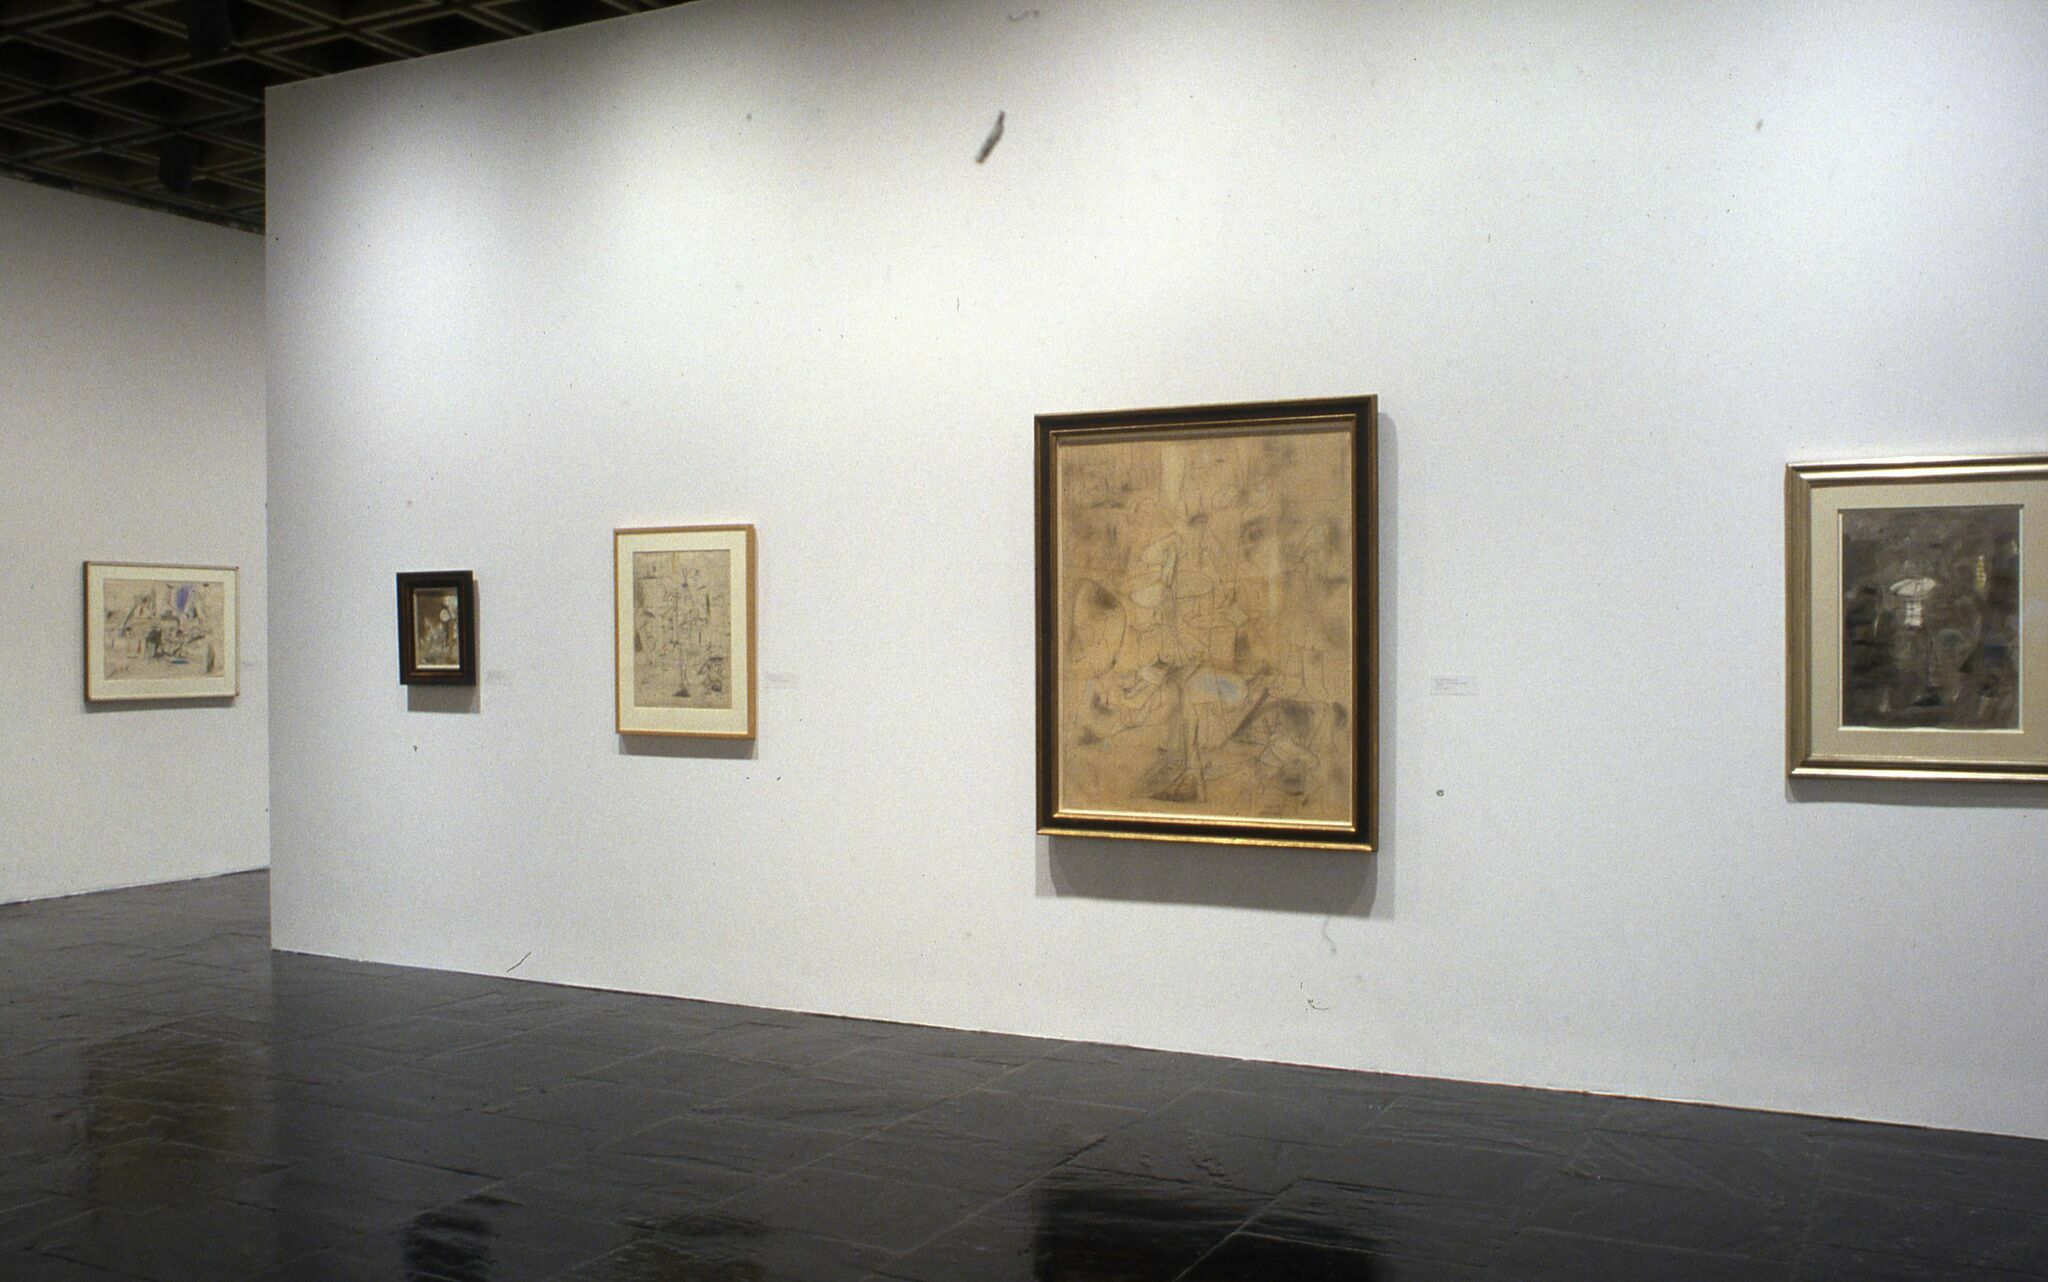 Works of art displayed in a gallery.